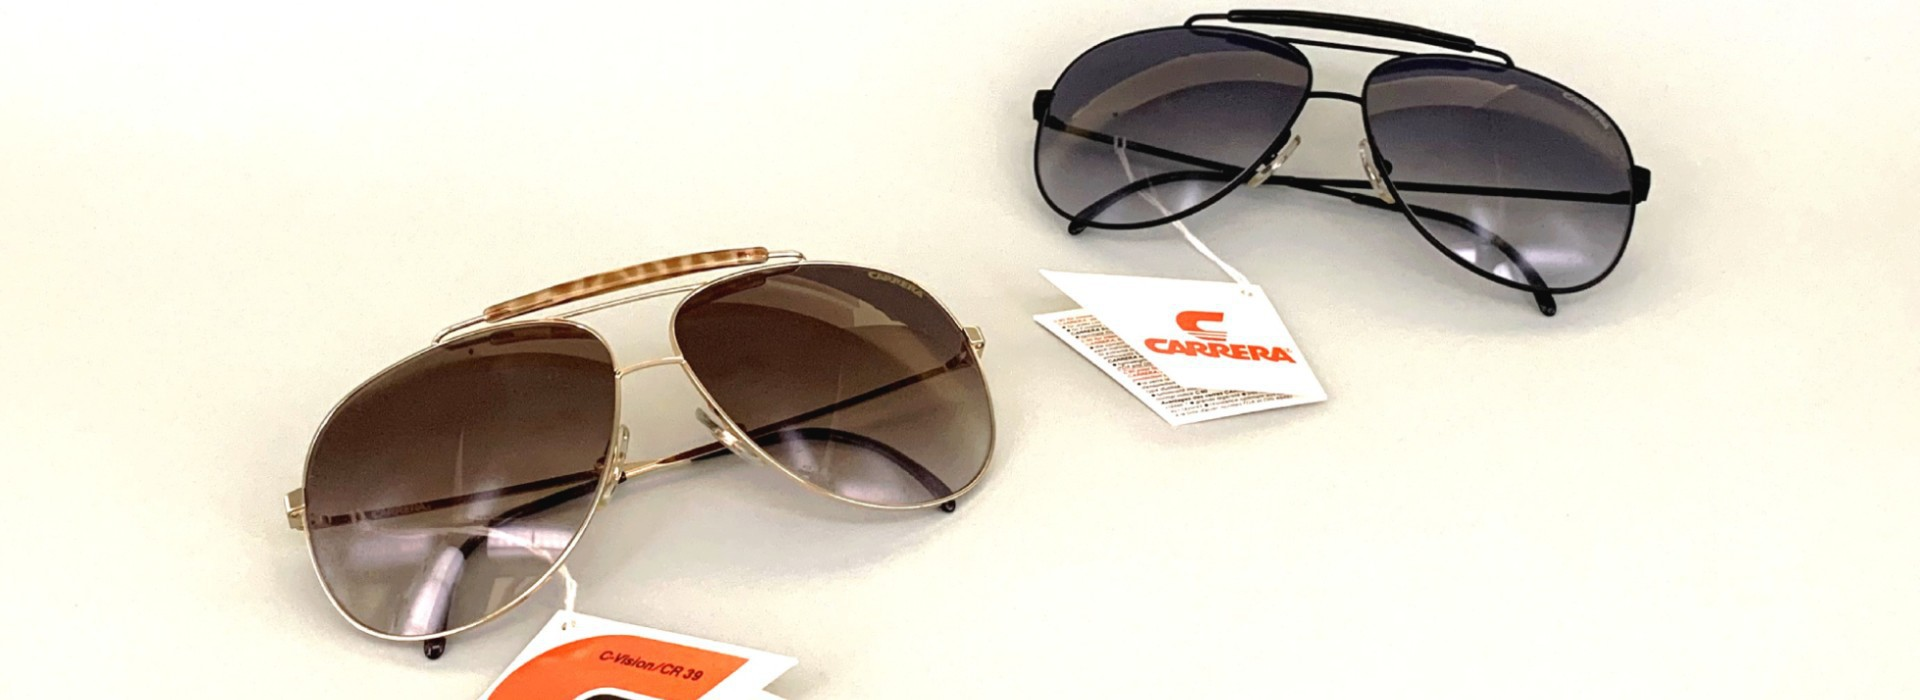 Vintage Carrera sunglasses from the 90's